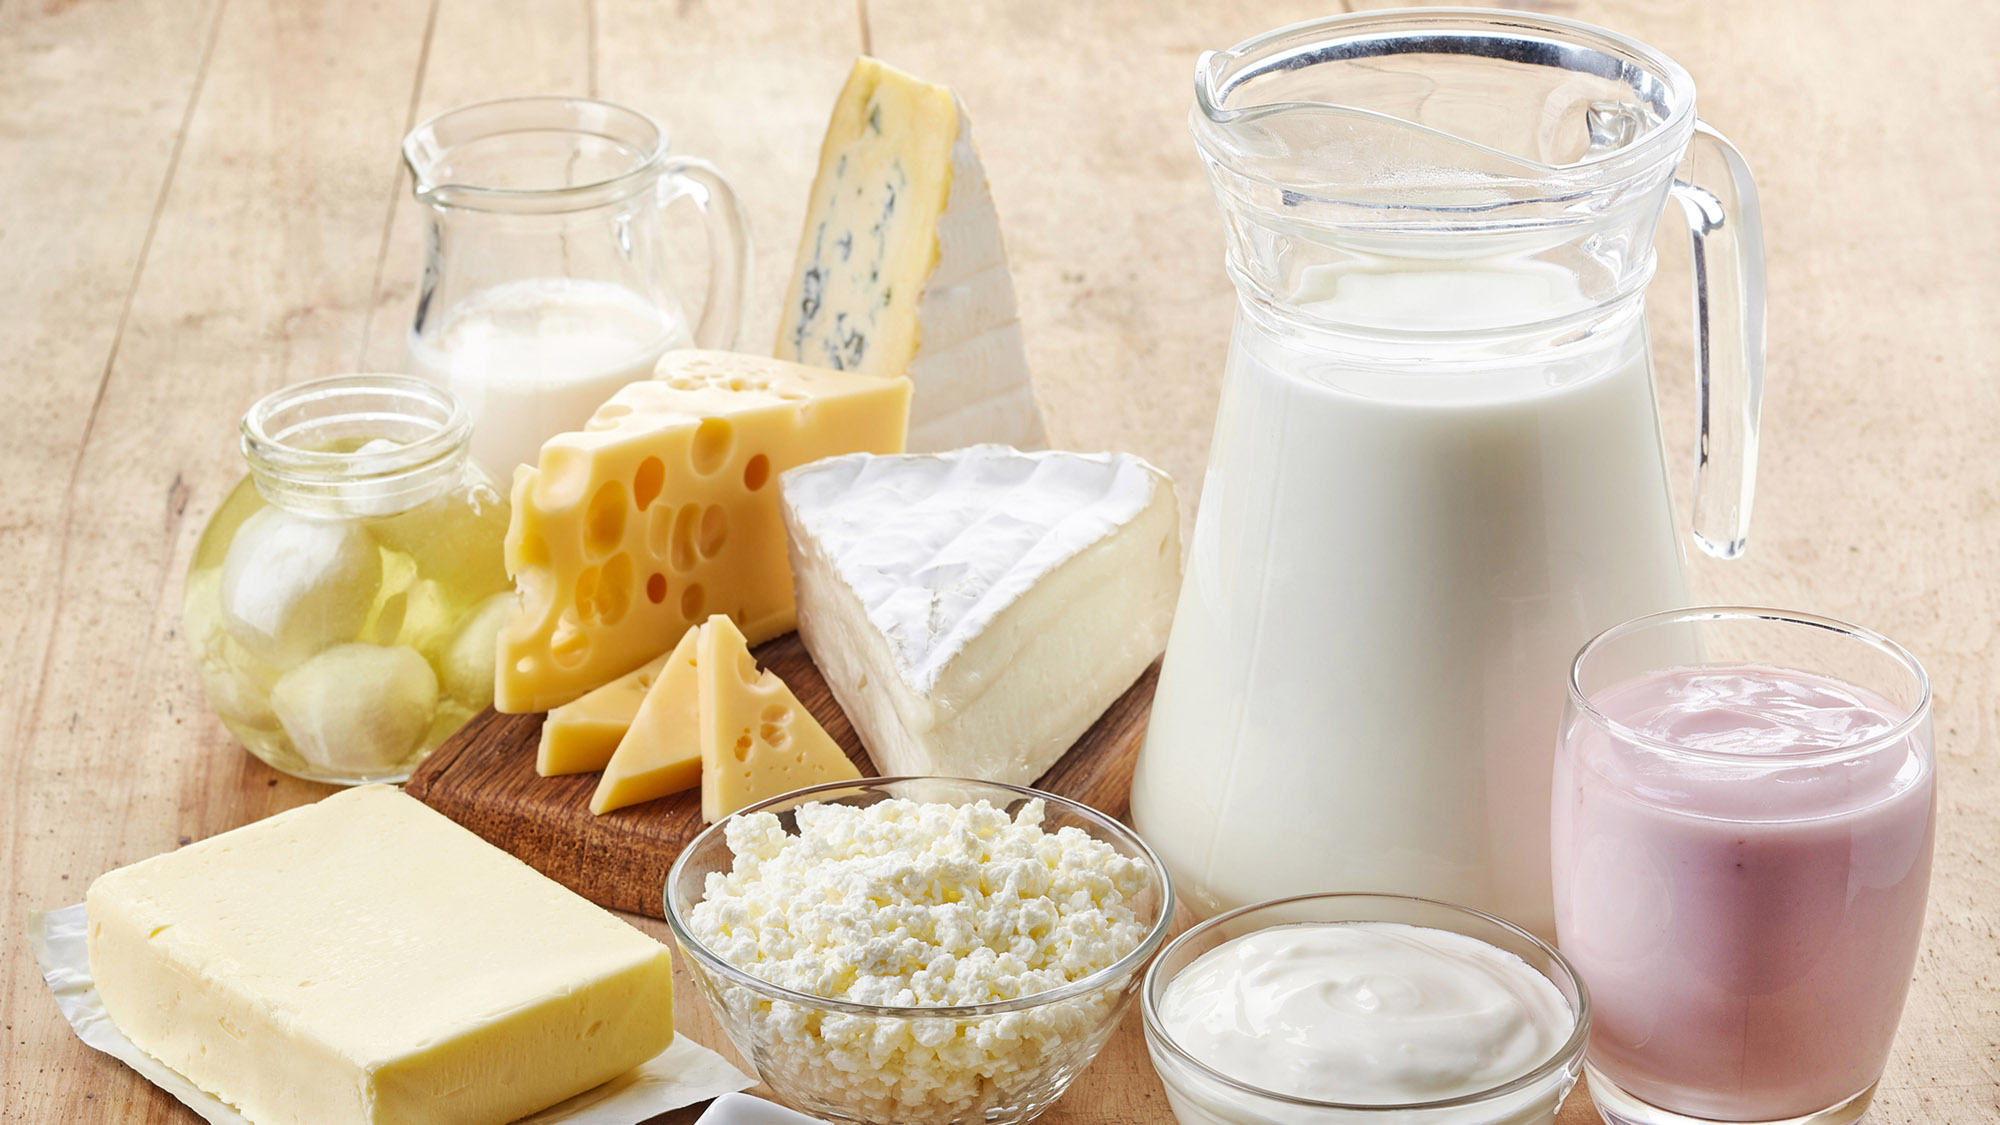 Various fresh dairy products, including a pitcher of milk, cheeses and yogurt, displayed on a wooden countertop.